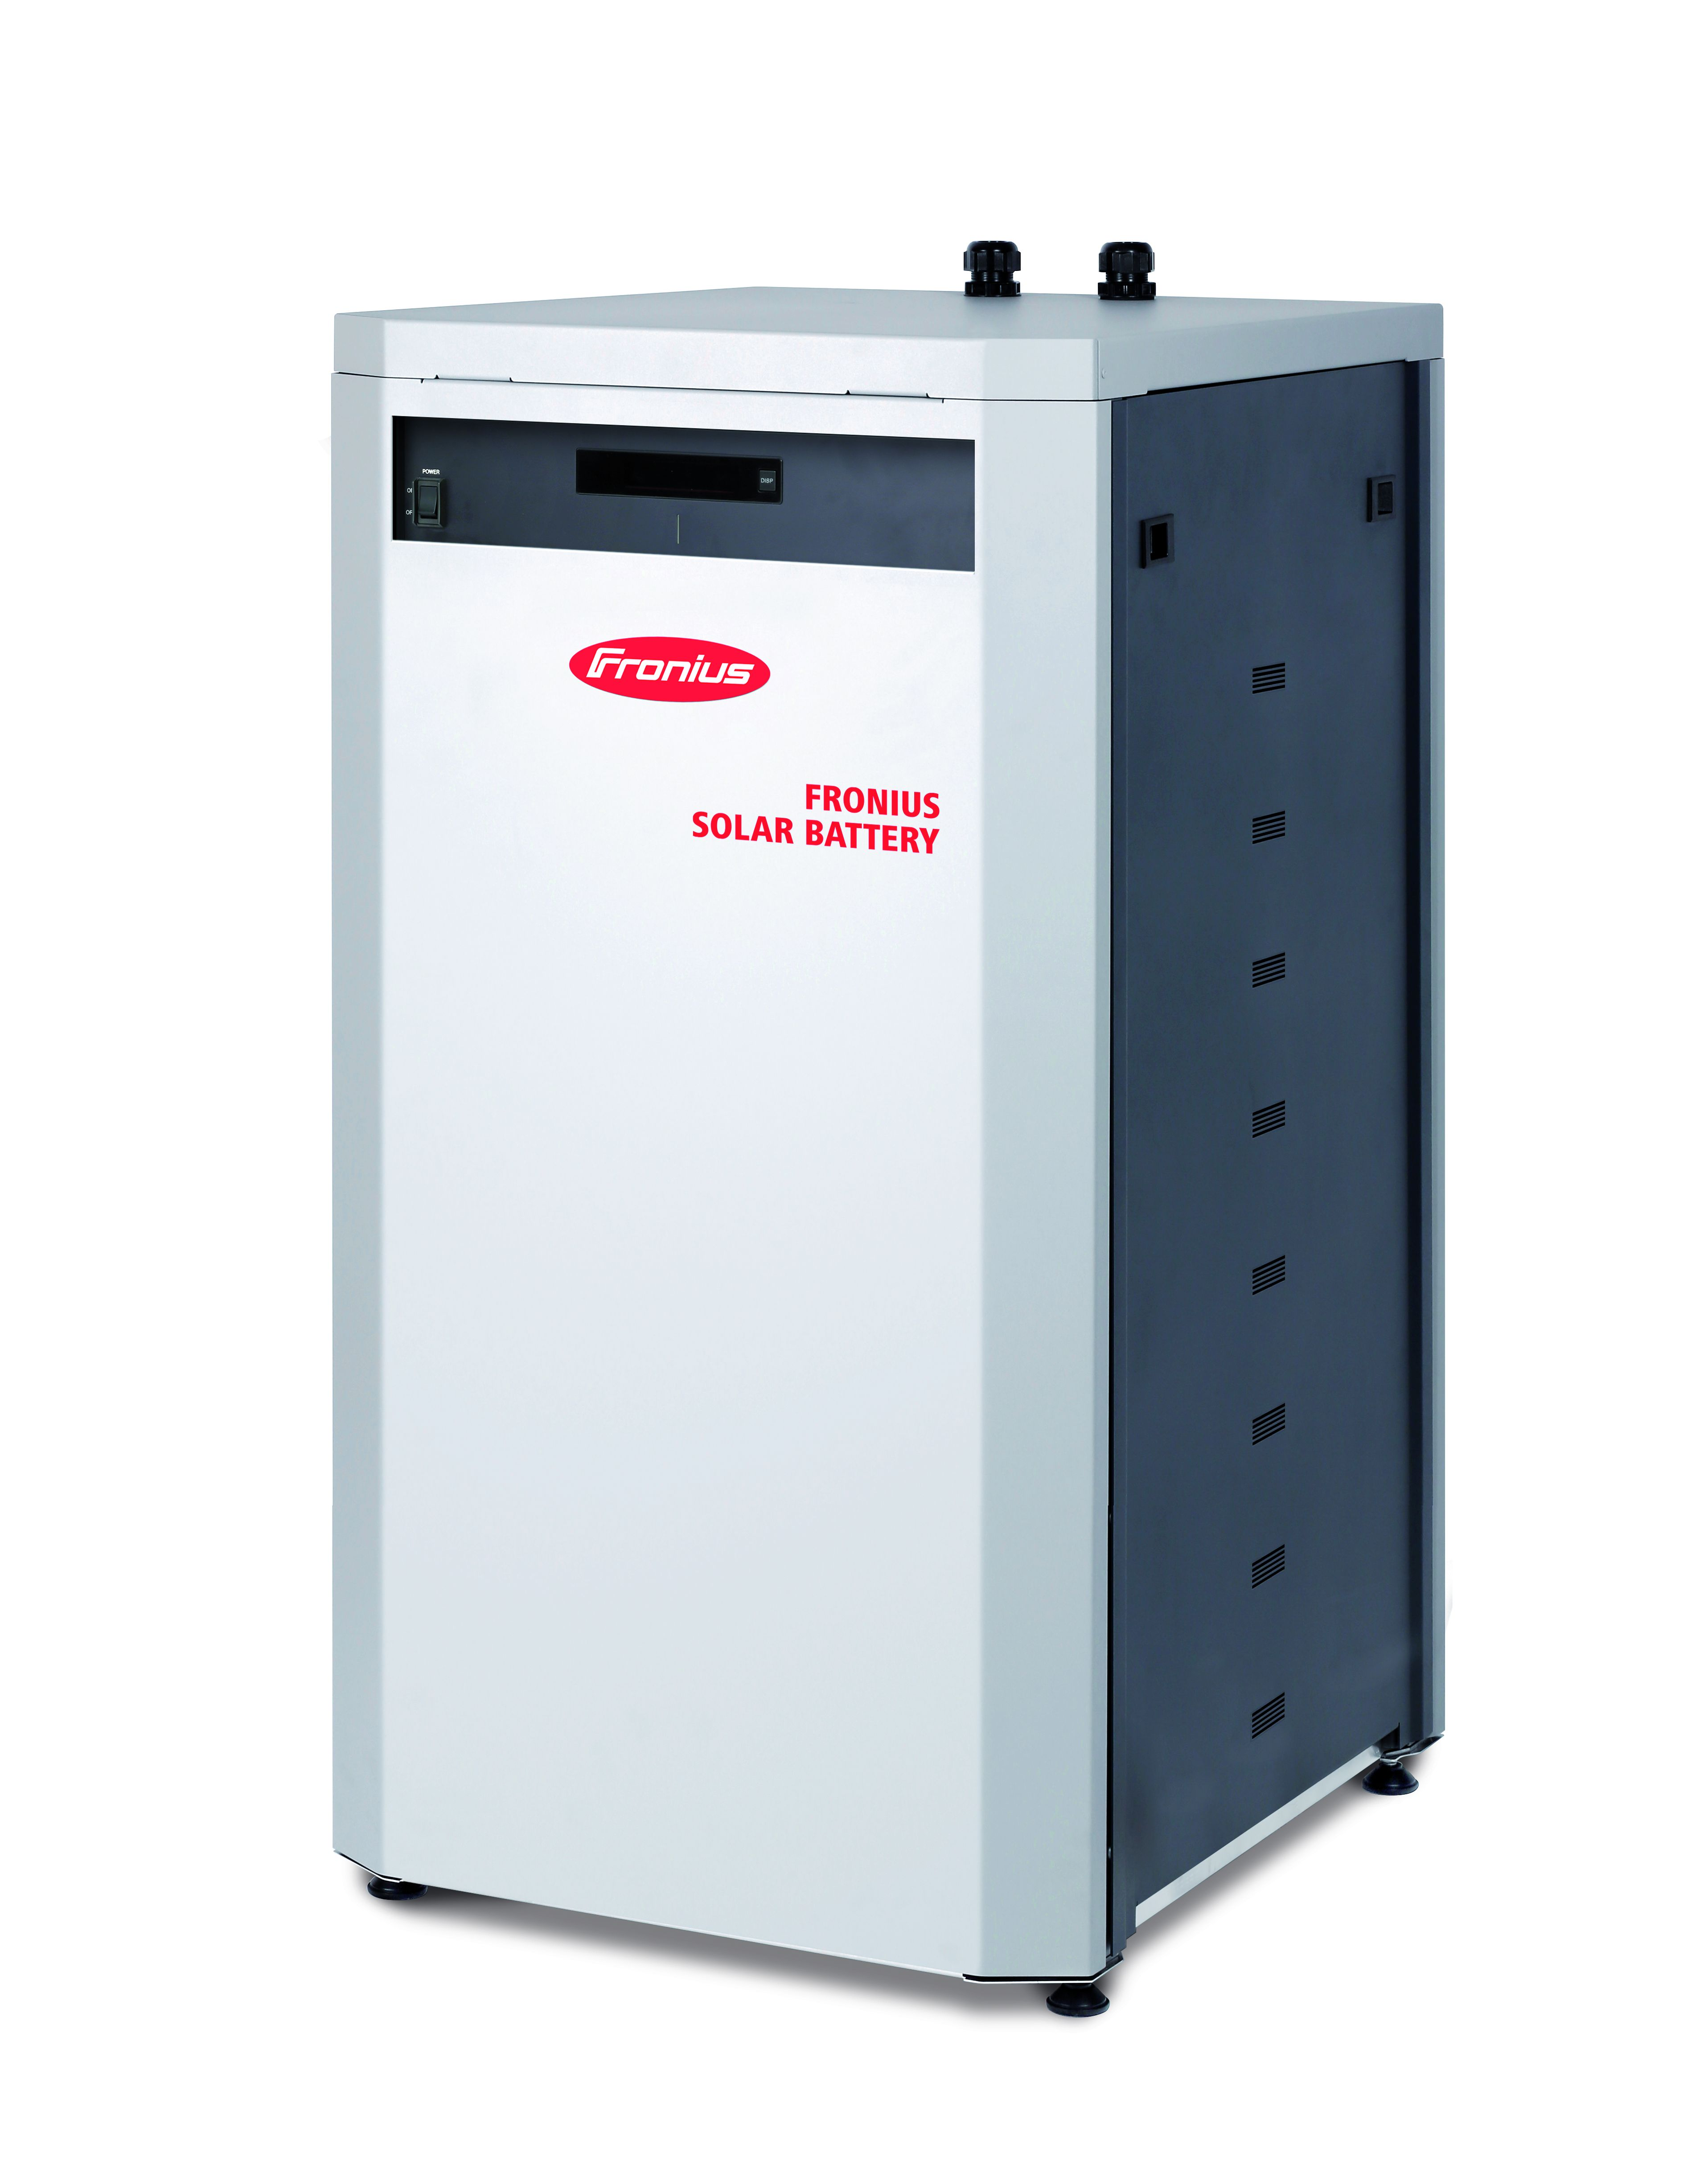 1 Stk Fronius Solar Battery 7.5 (6,0 kWh nutzbar) PVH10075--